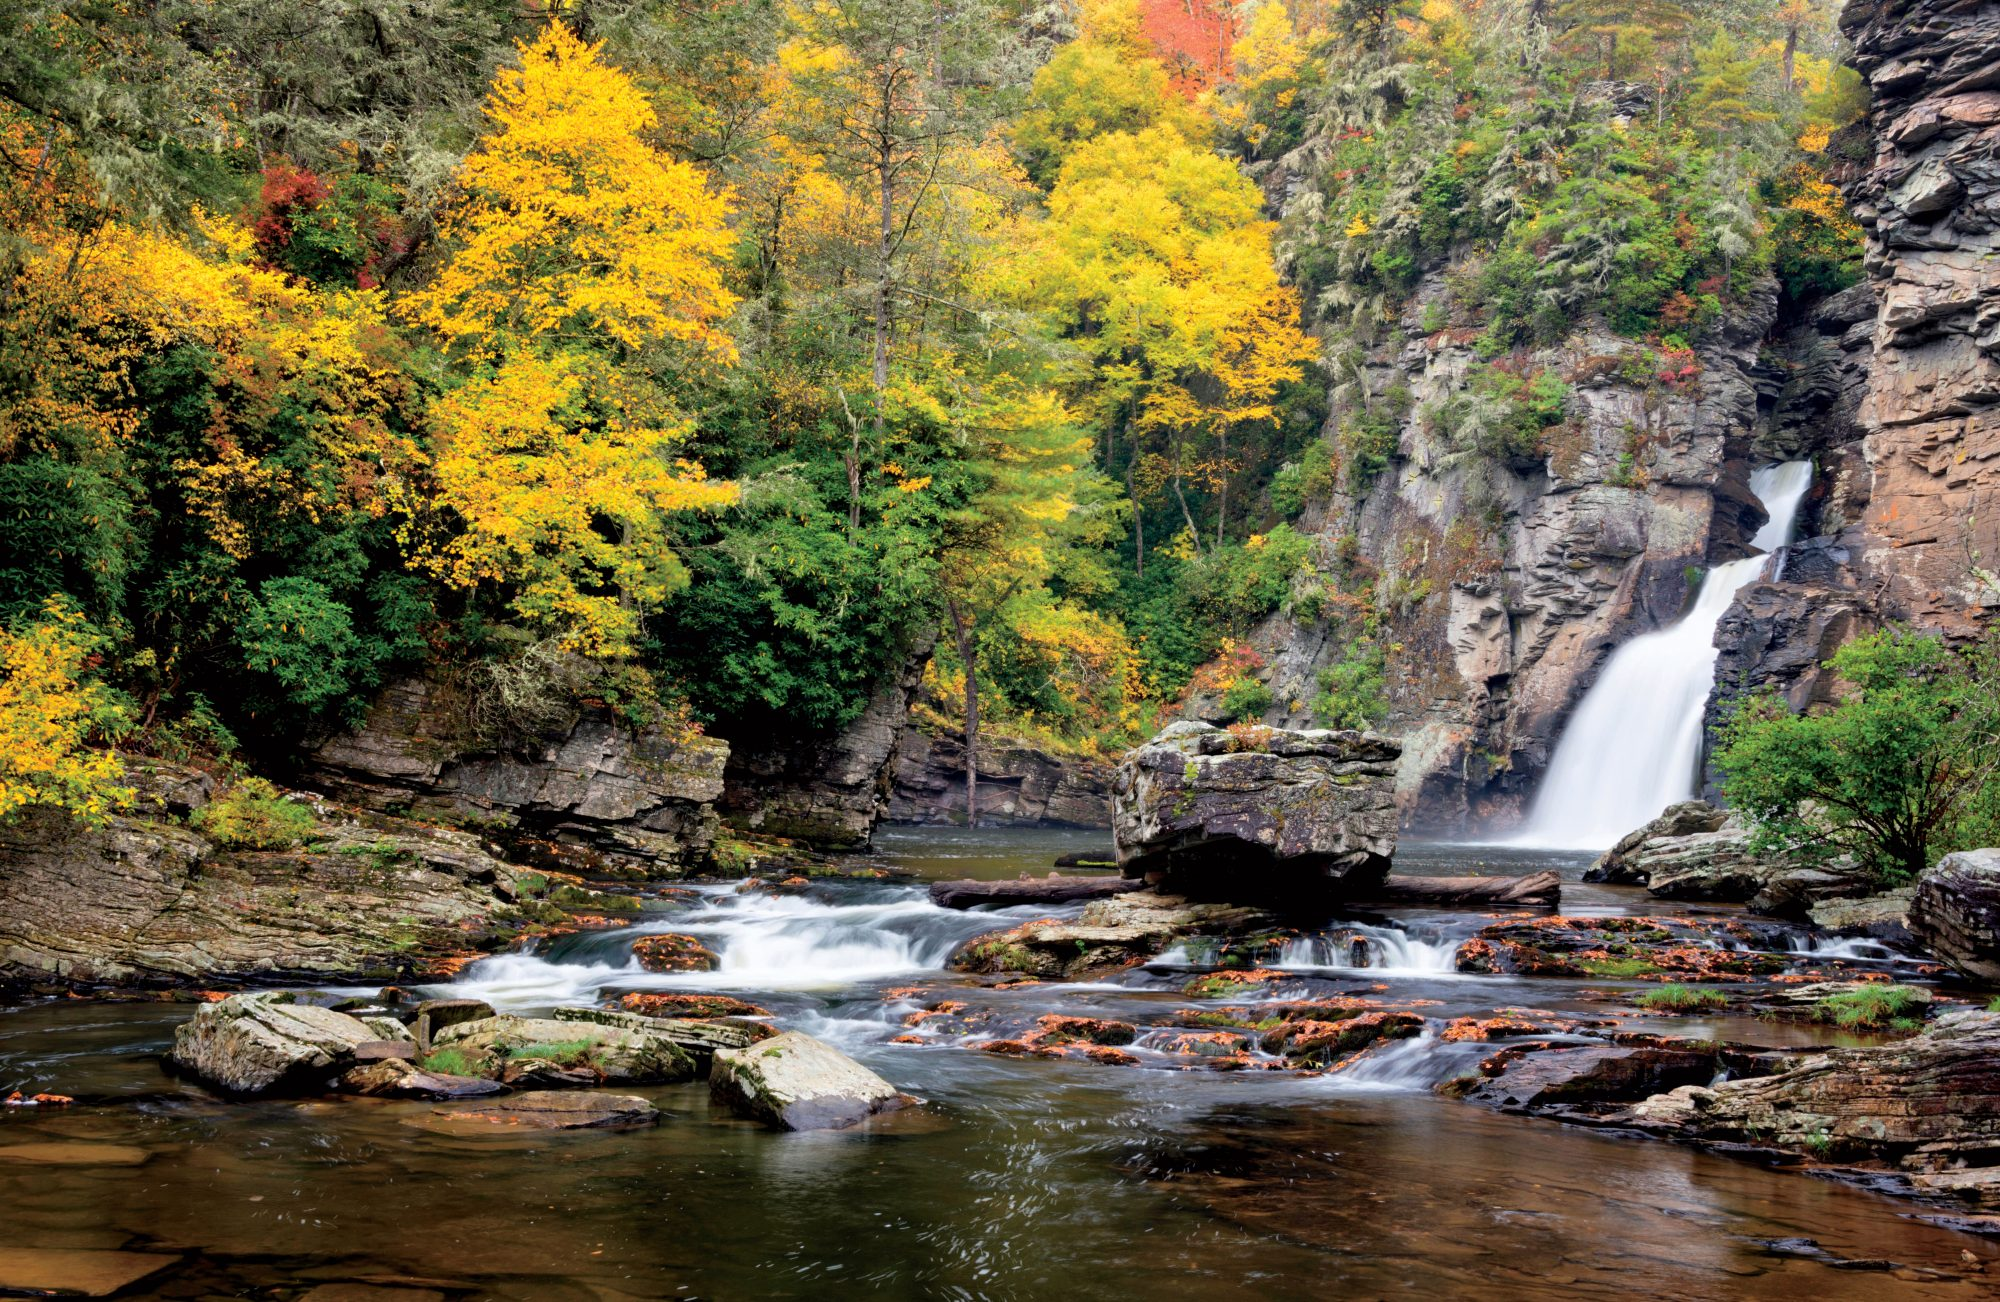 Linville Falls in western North Carolina is one of the most popular waterfalls along the Blue Ridge Parkway.